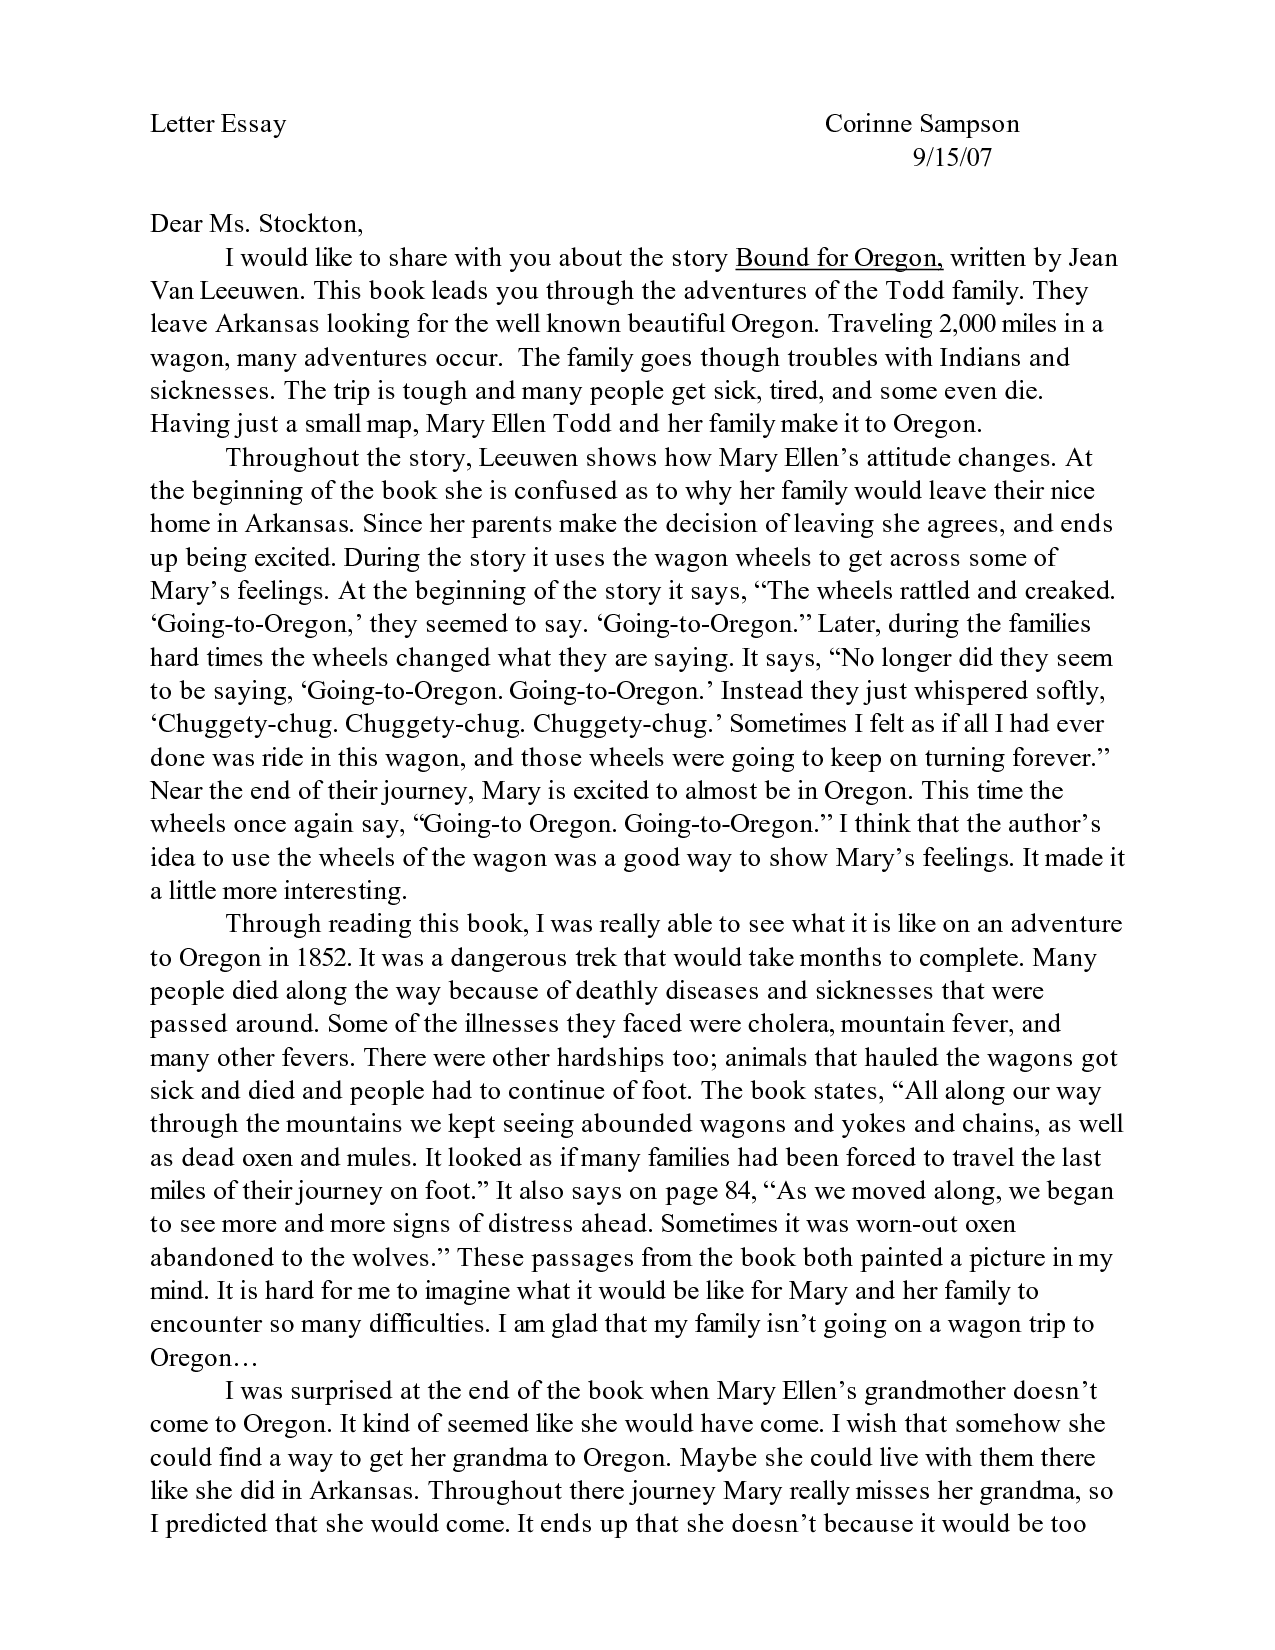 Samples Of Scholarship Essays For College Scholarship